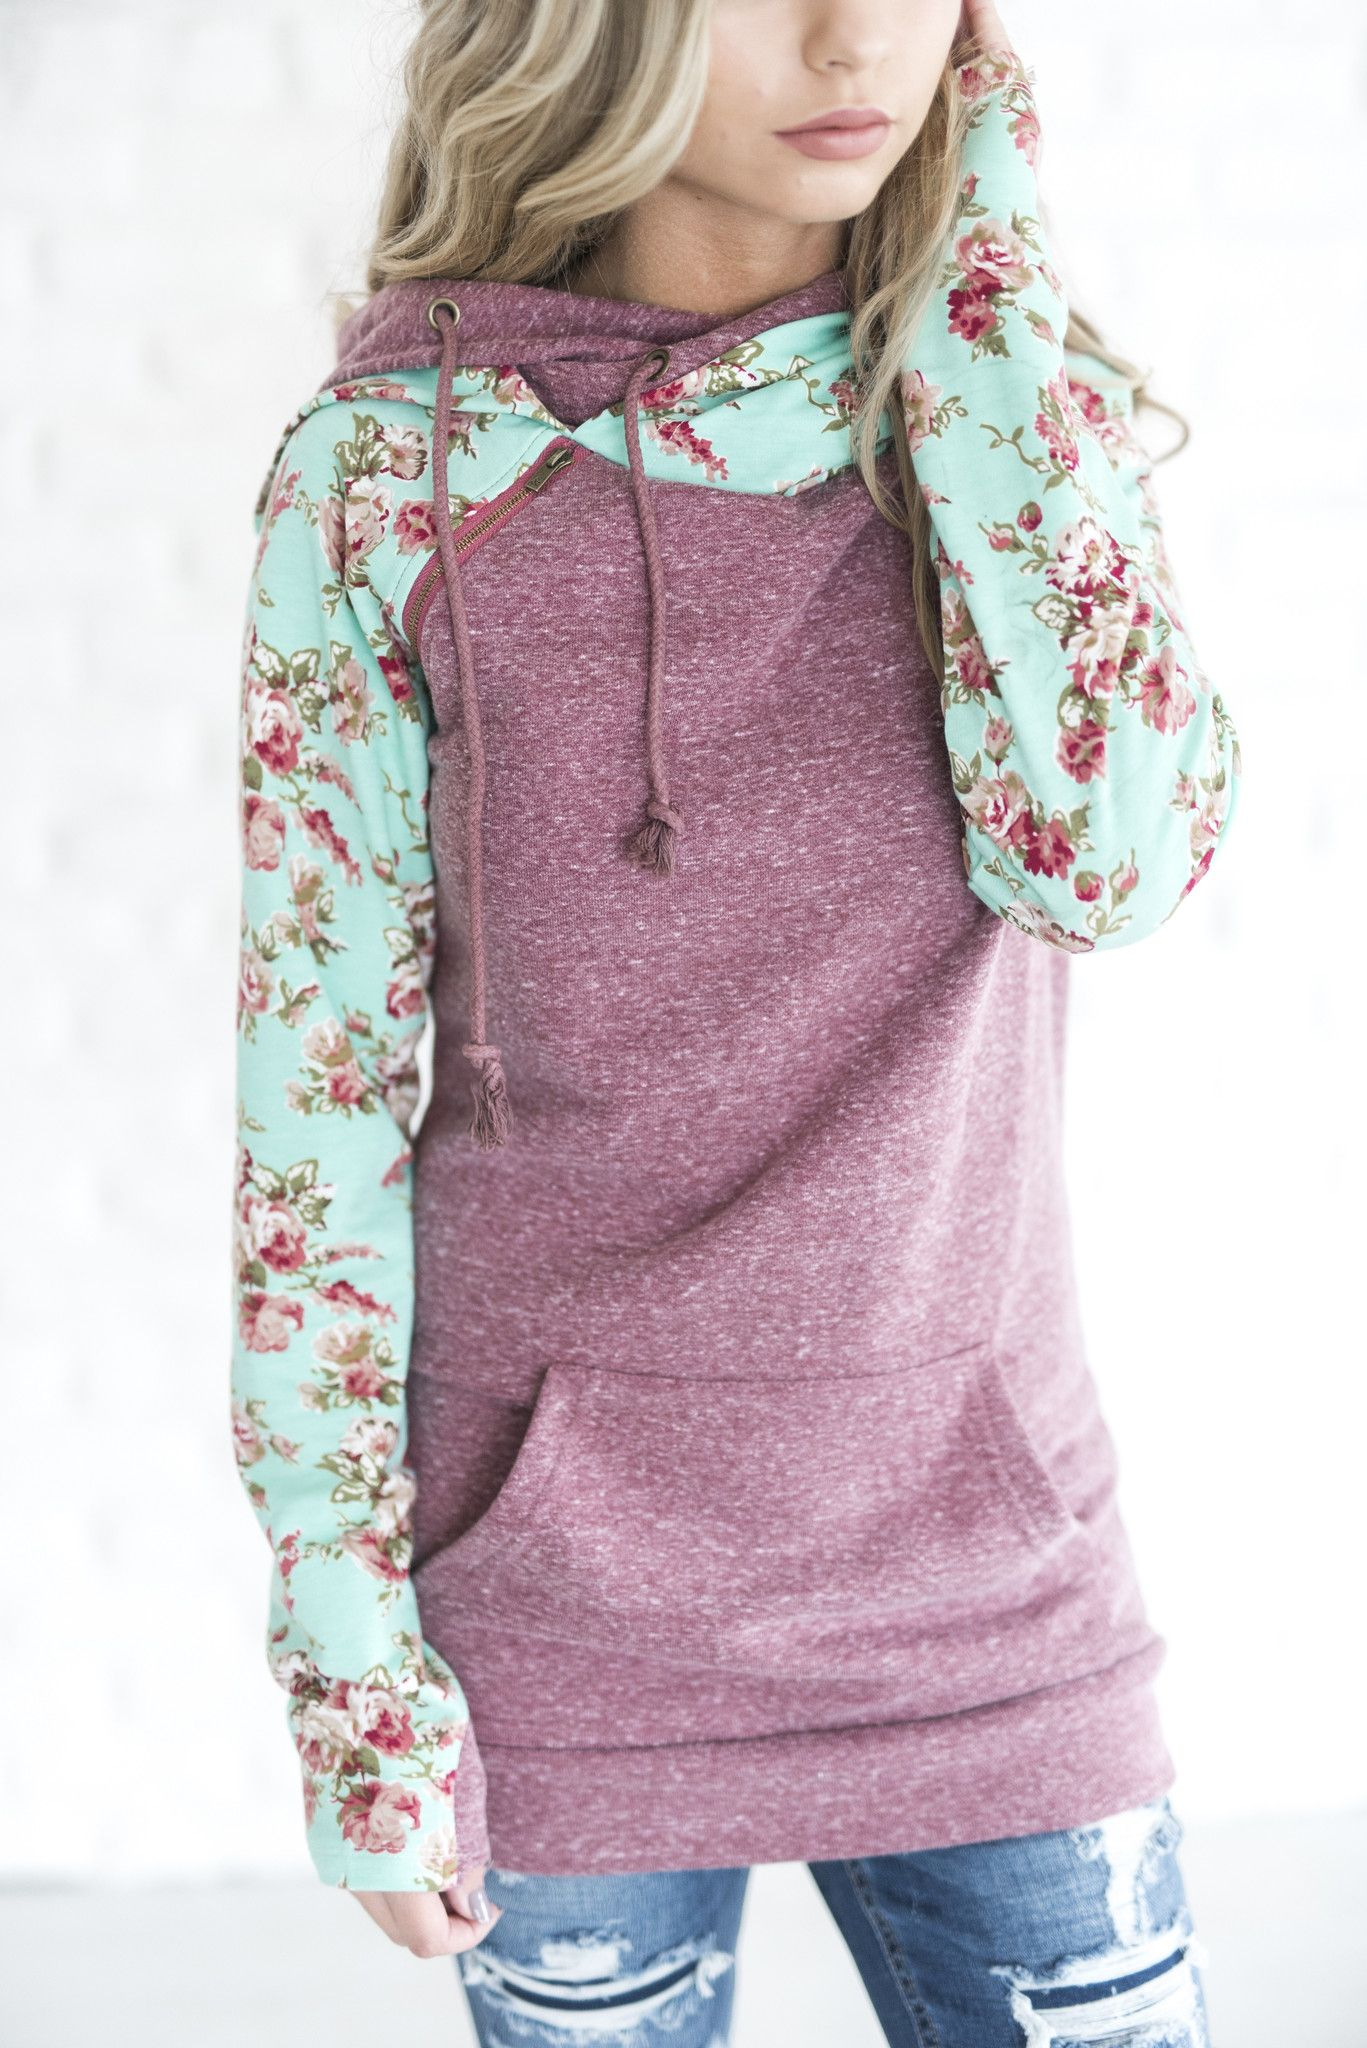 Double Hooded Sweatshirt Berry Floral Ships 1 17